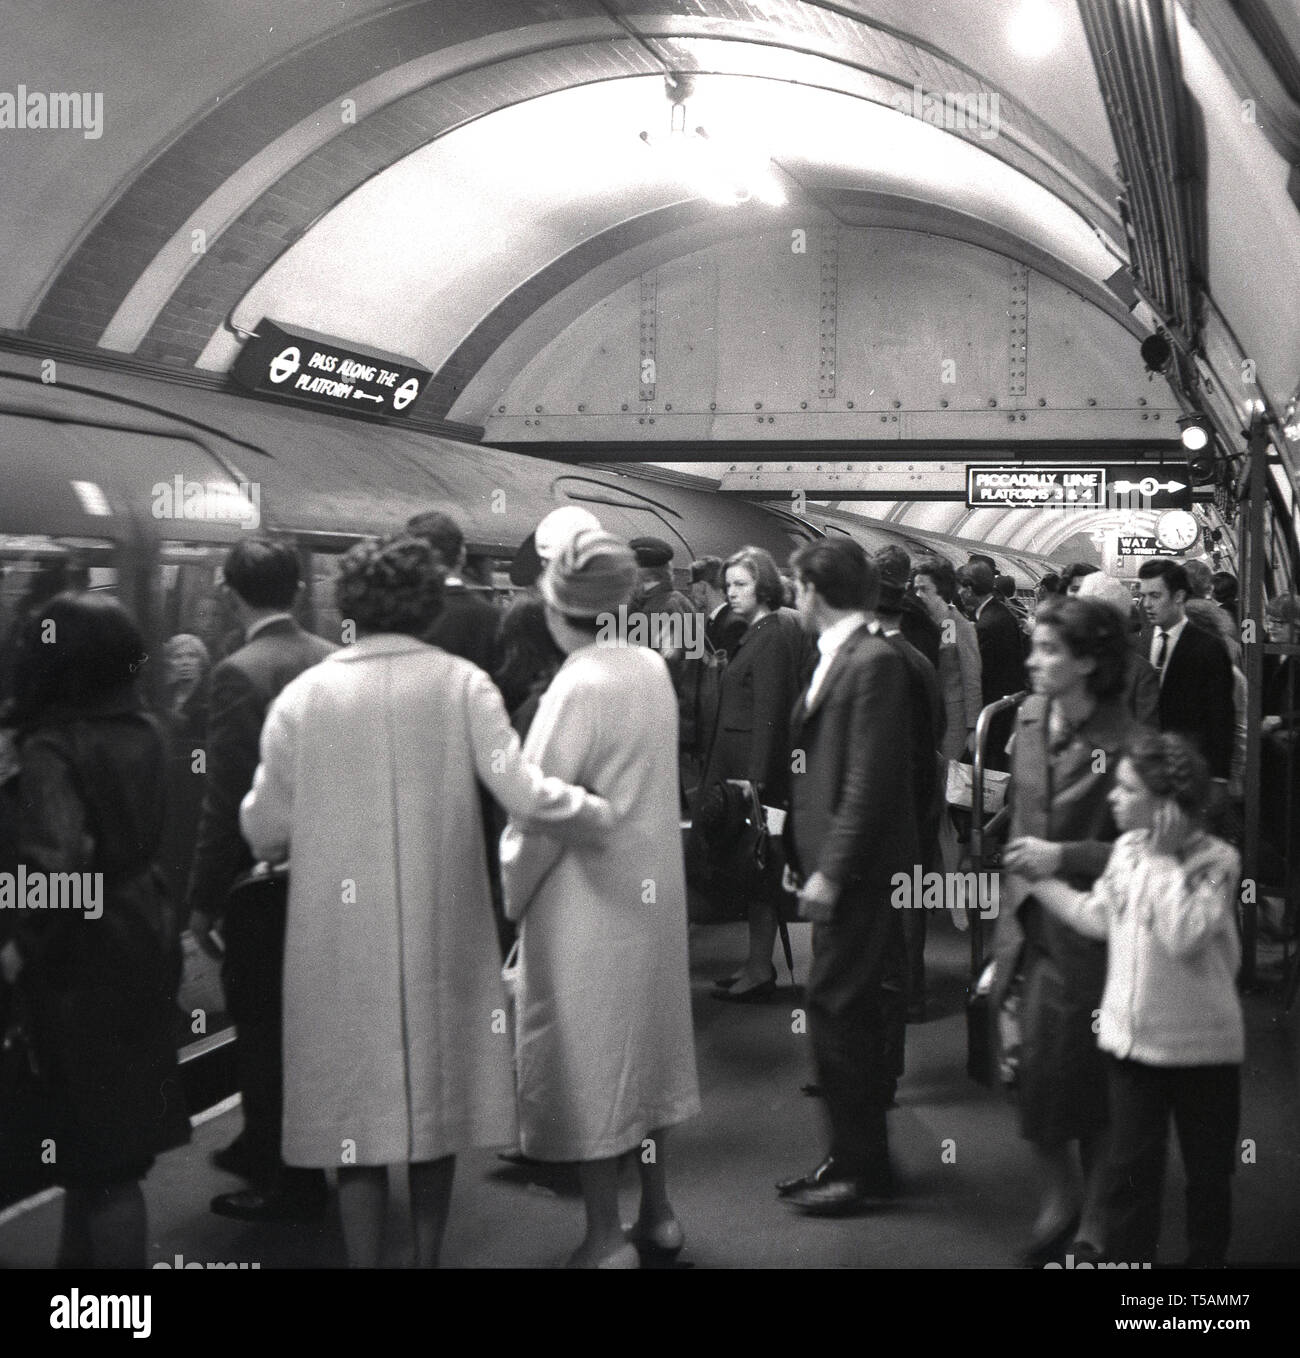 1960s, historical, passengers on a crowded platofrm about to board a tube train on the london underground, London, England, UK. - Stock Image